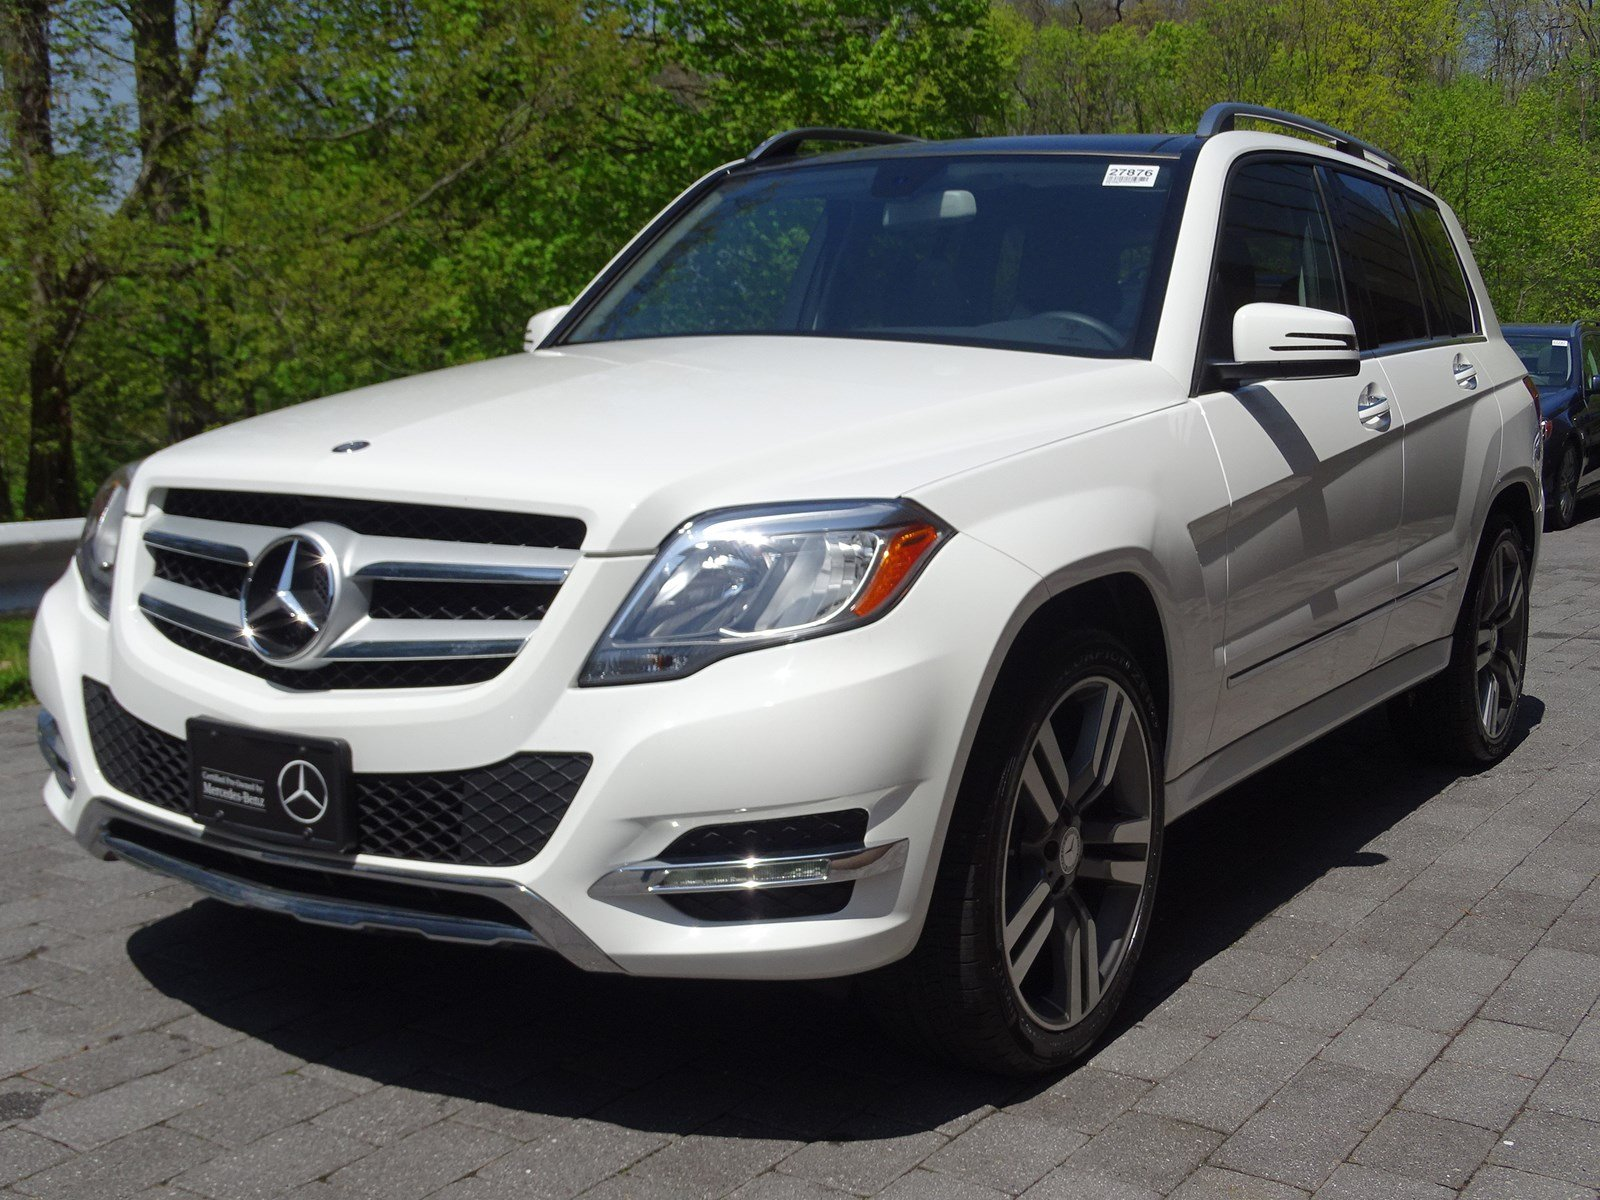 Certified pre owned 2014 mercedes benz glk glk 350 suv in for Certified mercedes benz